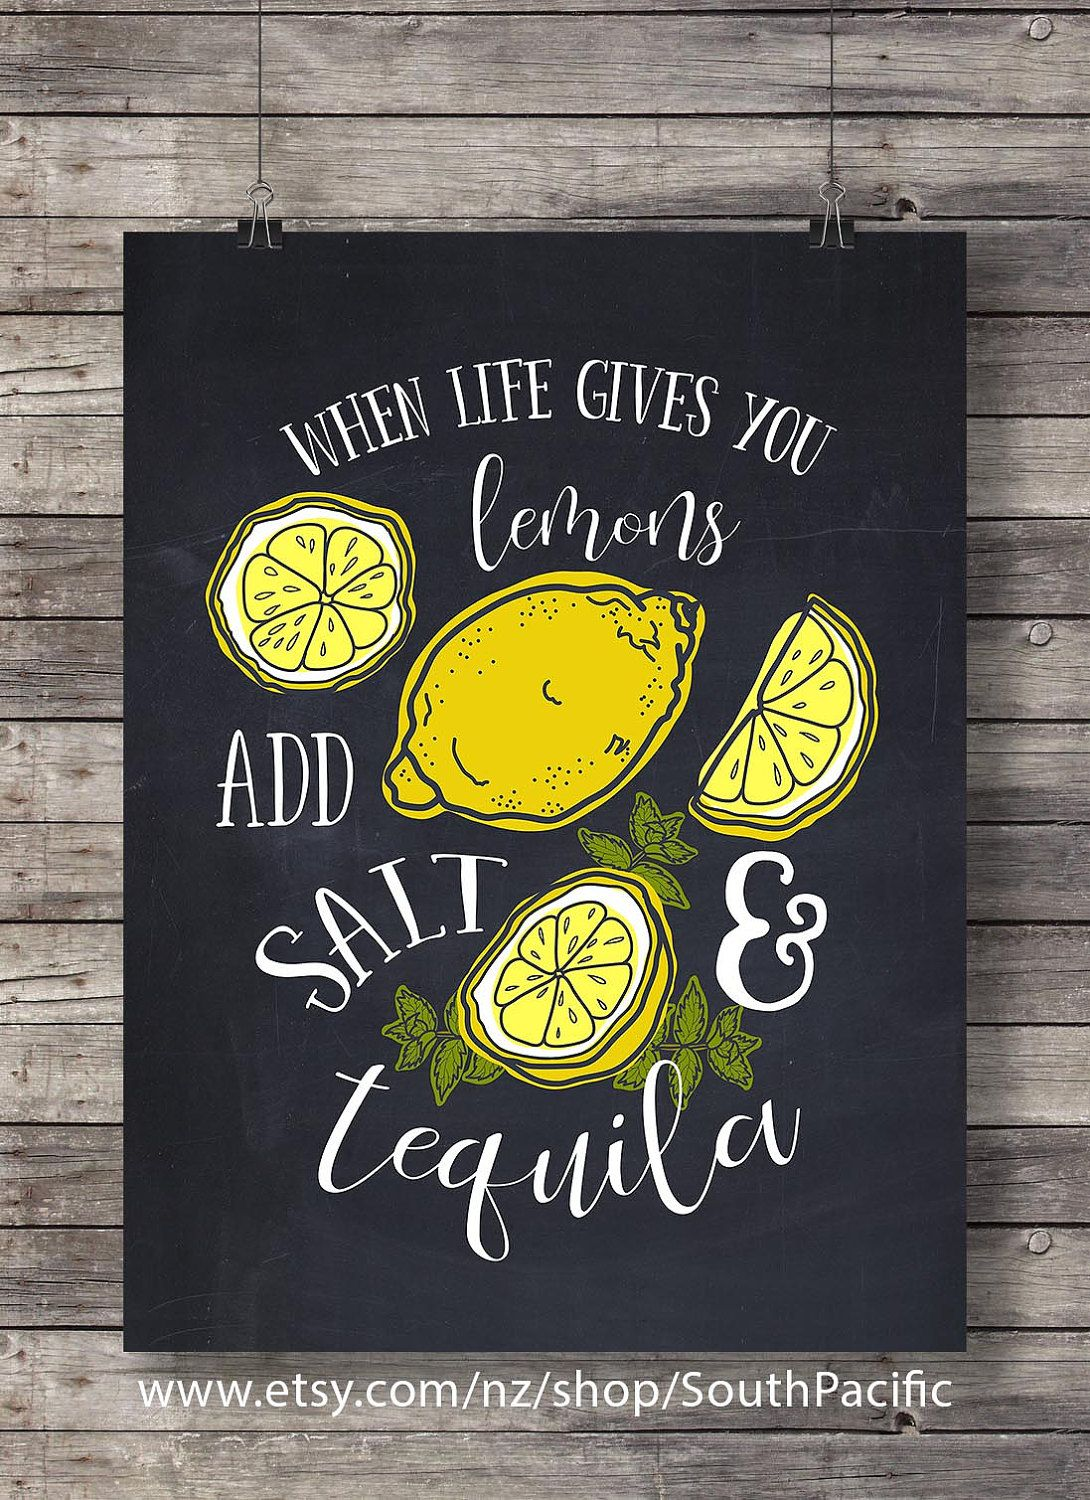 When life gives you lemons - add salt and tequila! | Chalkboard ...